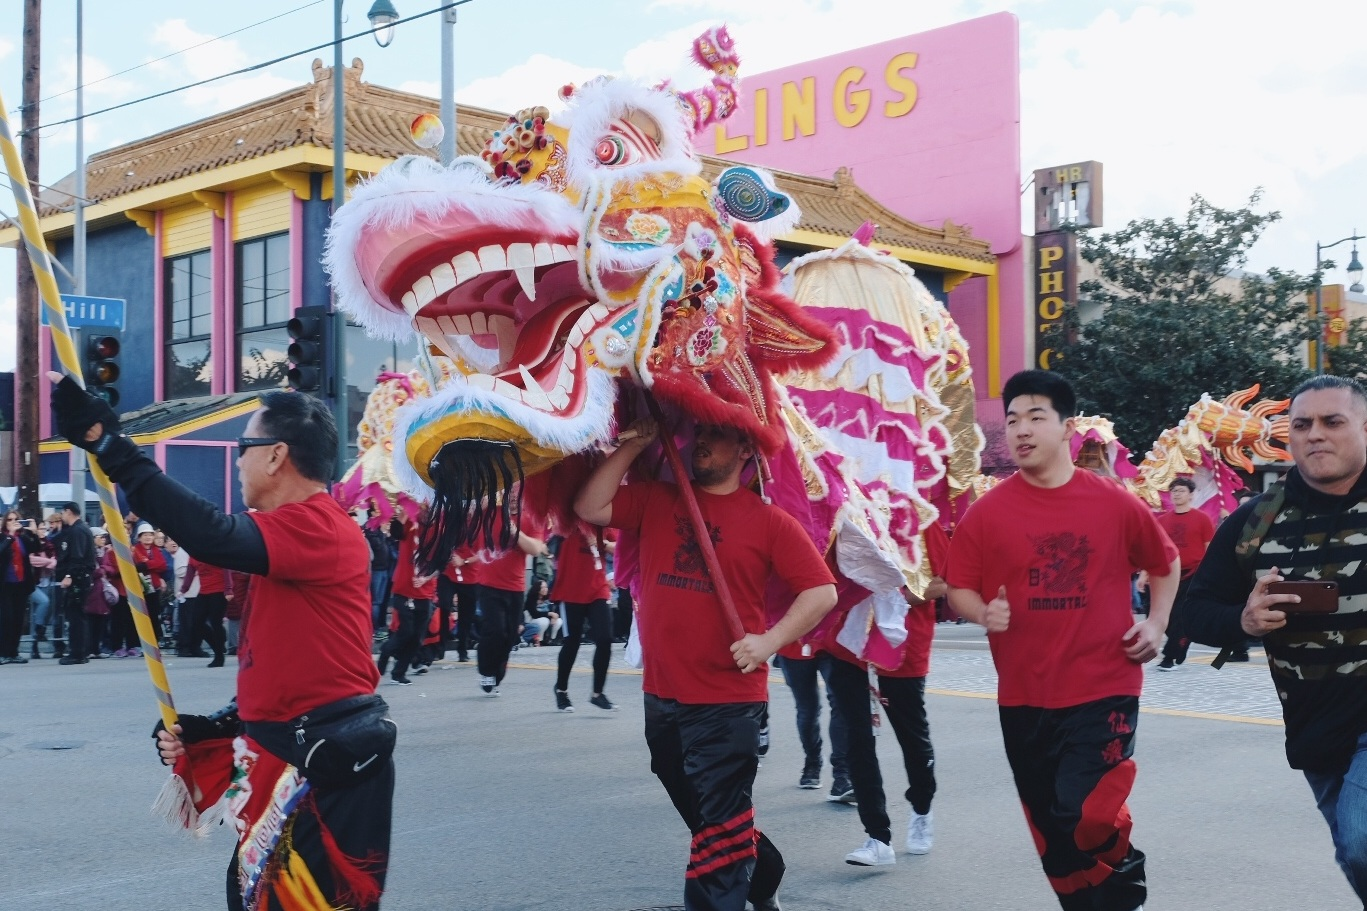 Dragon running down the street in the Chinatown Parade 2019